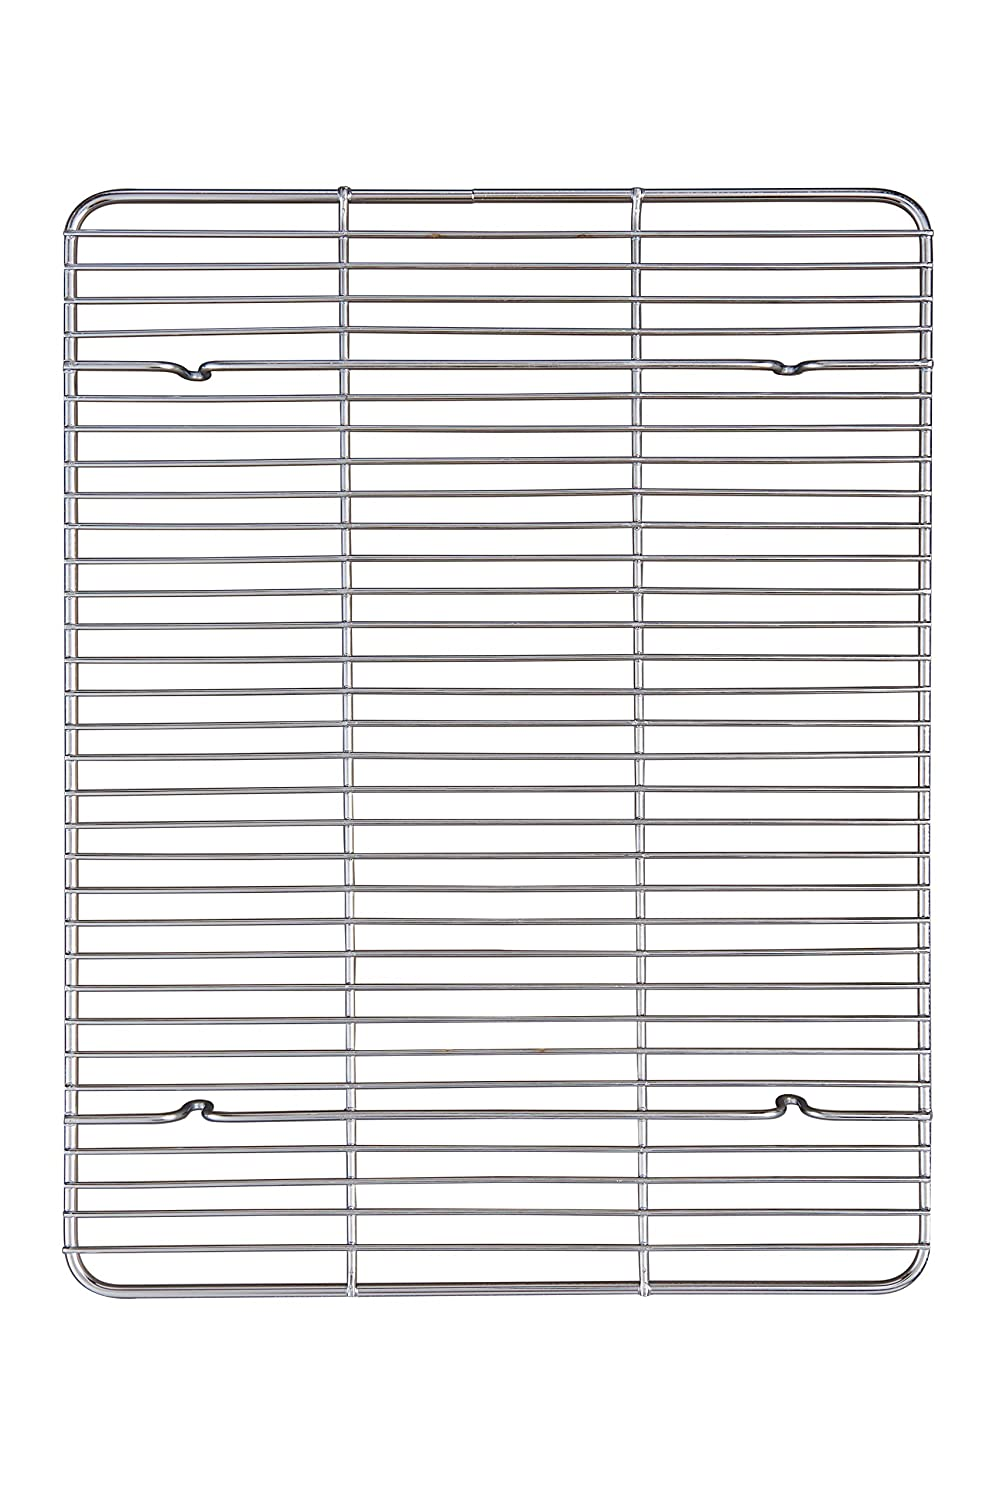 Mrs. Anderson's Baking 43187 Mrs. Anderson's Professional Baking and Cooling Rack, 16.5-Inches x 13-Inches, Silver